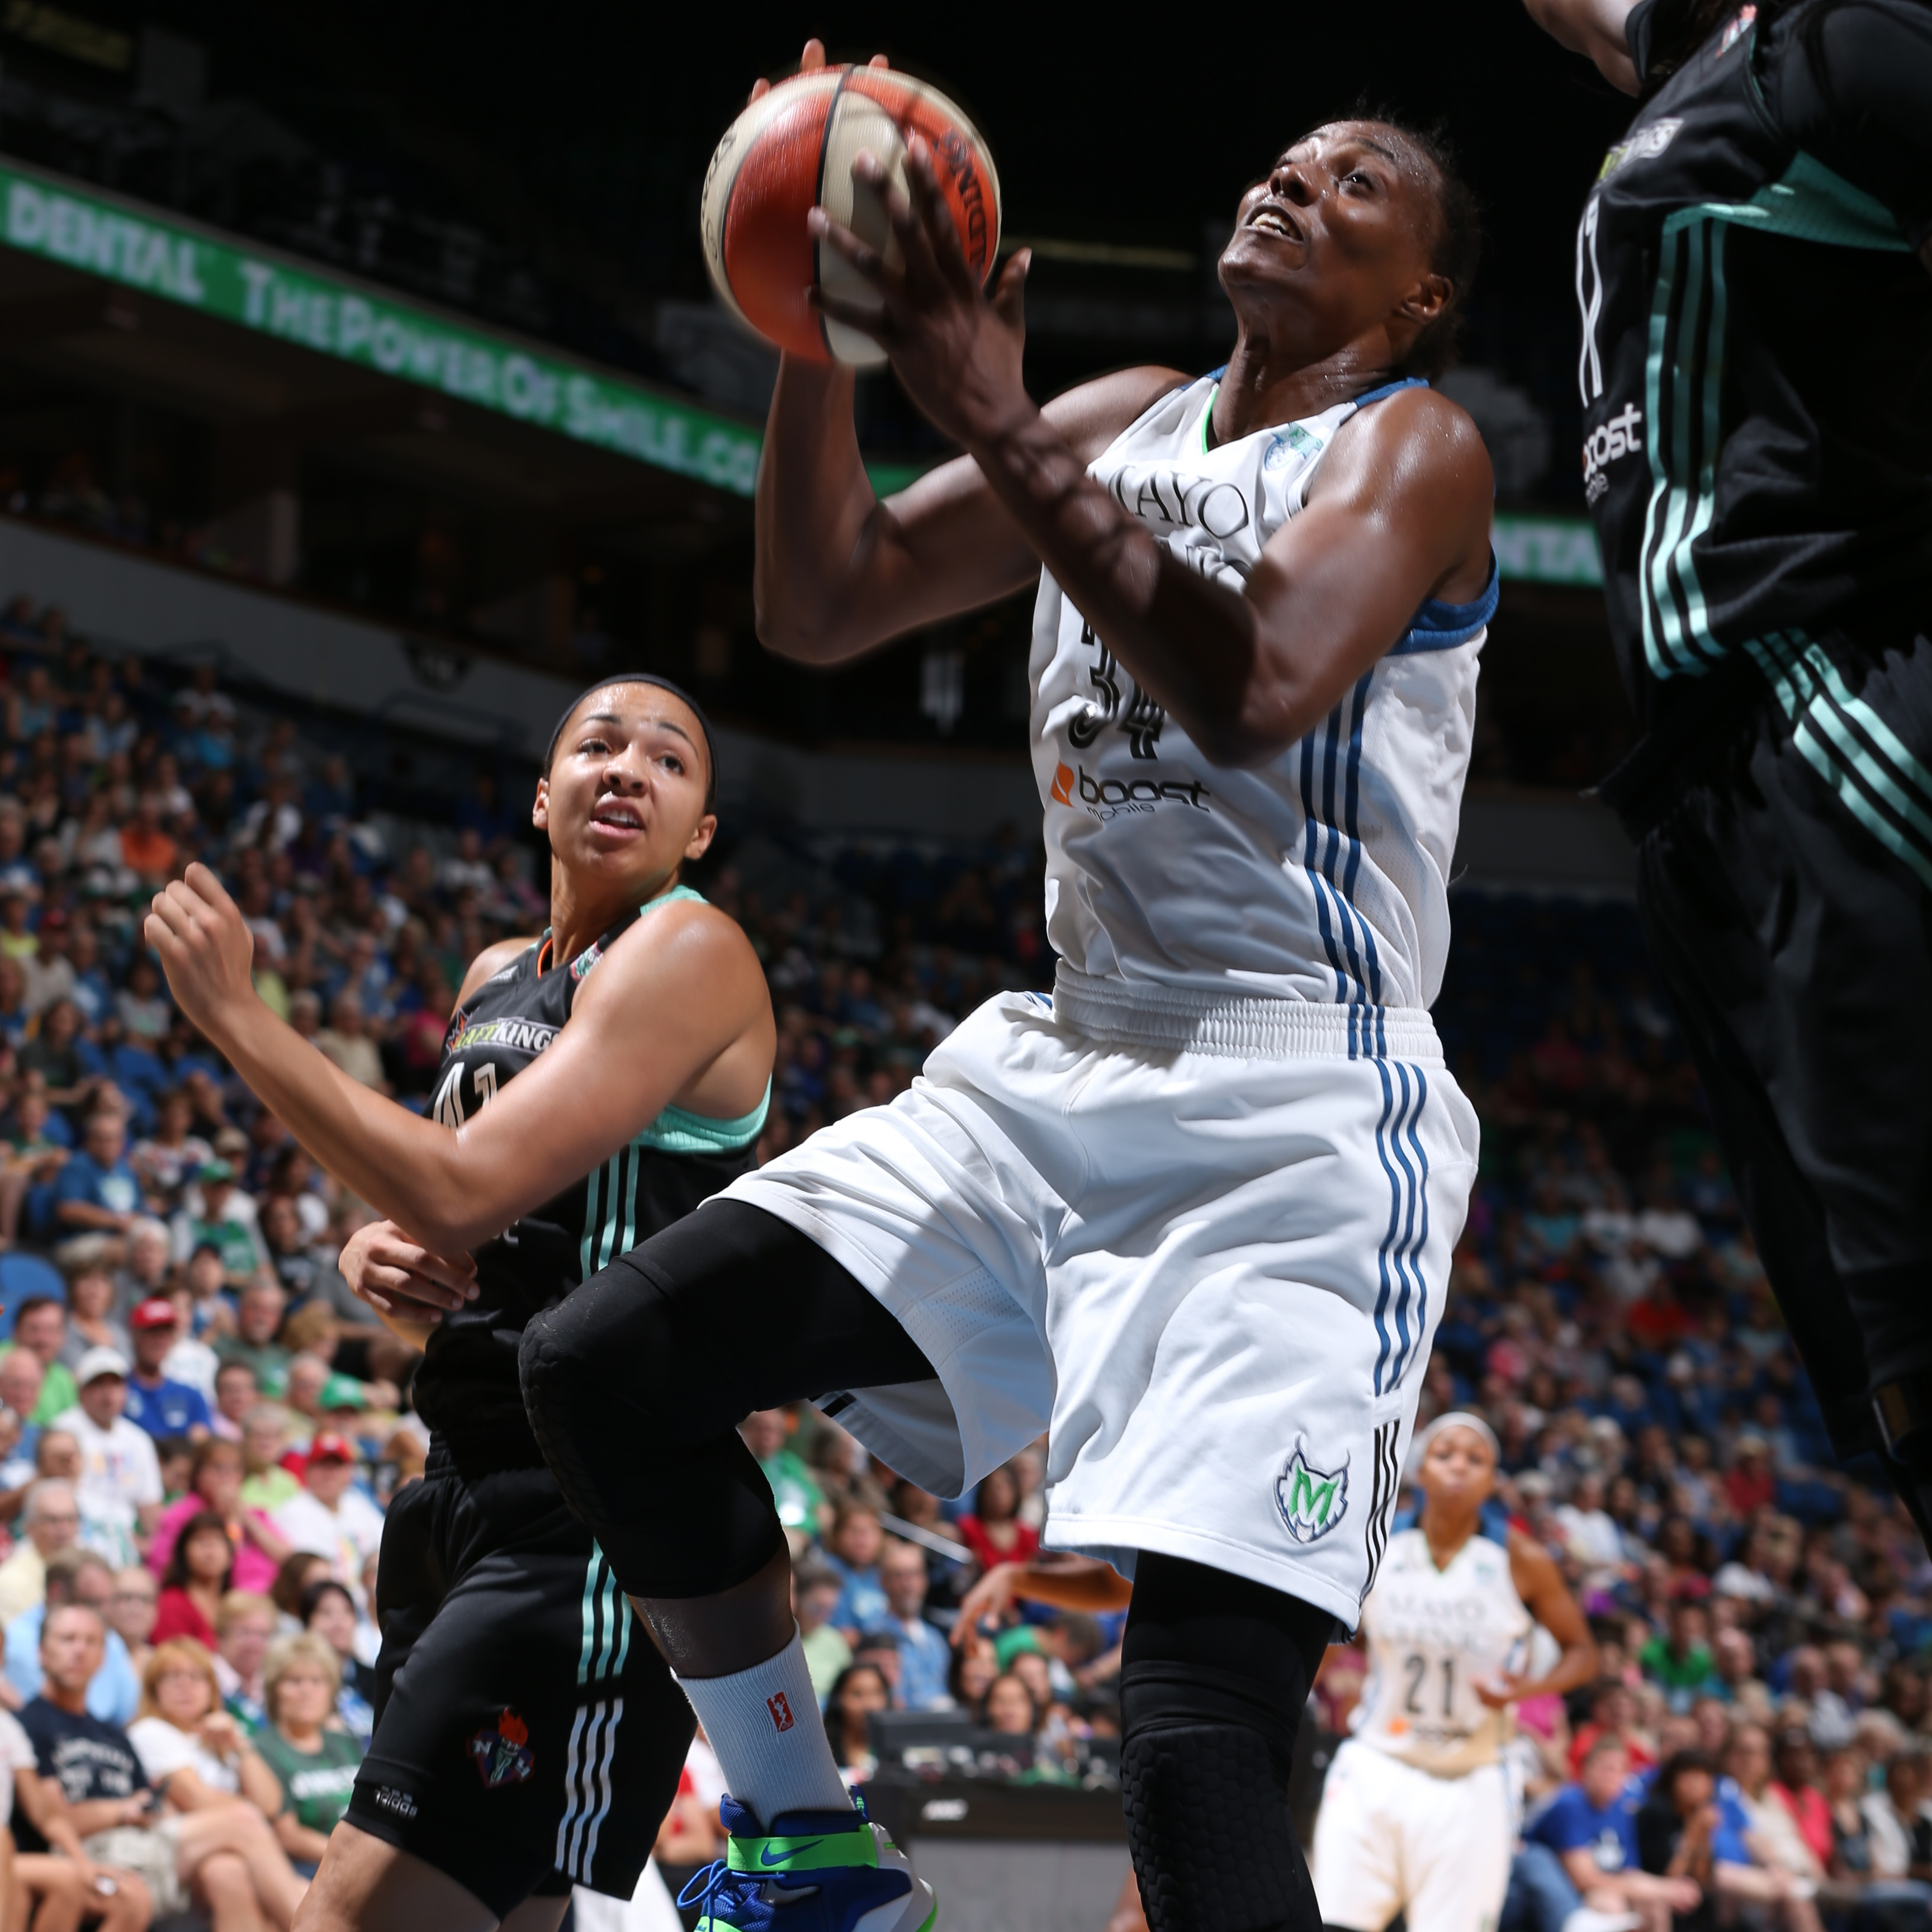 Lynx center Sylvia Fowles entered Sunday night's contest having achieved a double-double in her past five games; Fowles finished just one rebound shy of making it a sixth, finishing with 19 points, nine rebounds and three blocked shots.